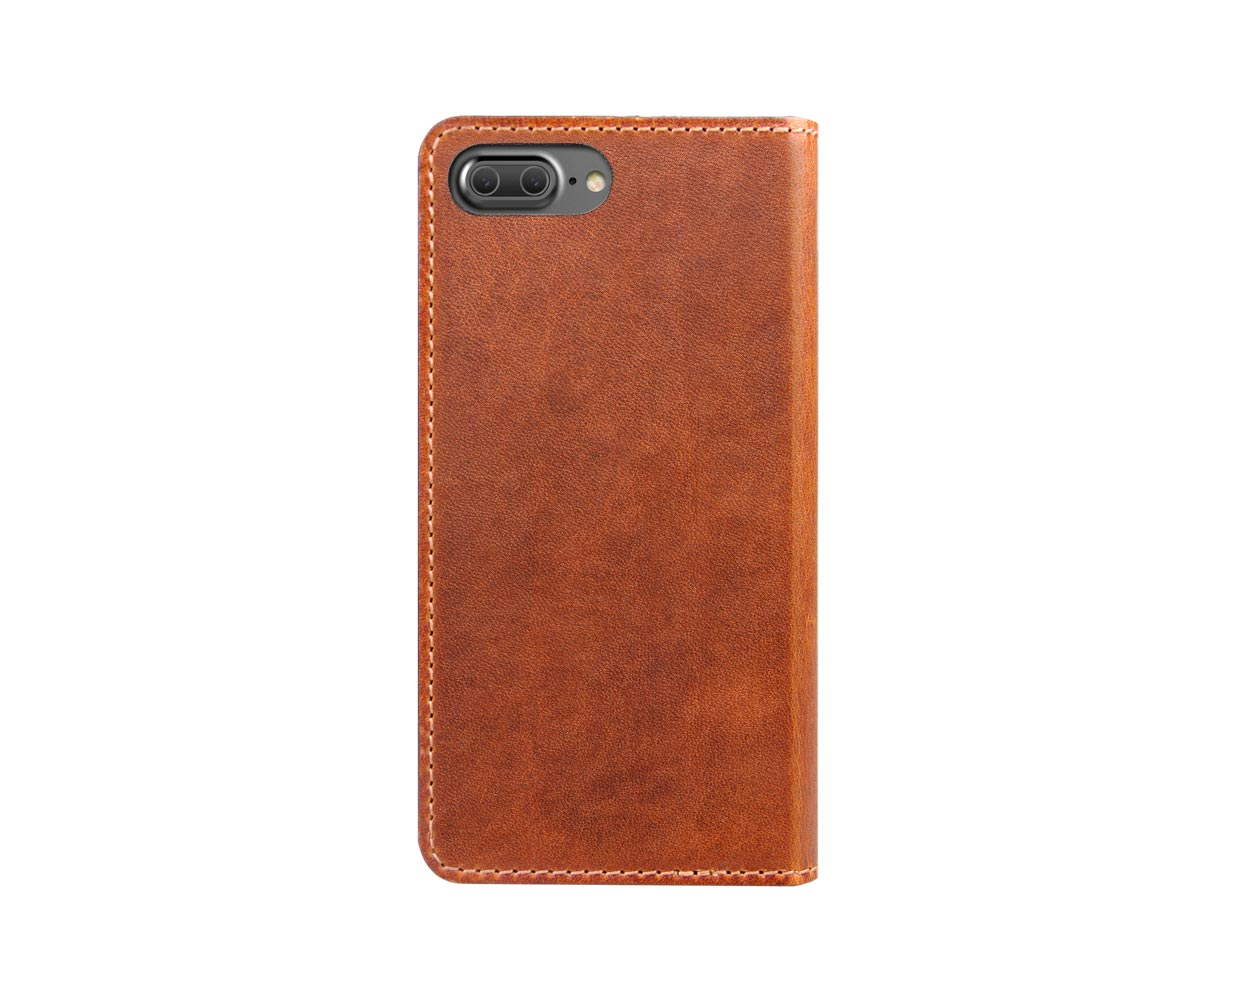 Чехлы: Nomad iPhone 7 Plus Leather Folio Wallet Brown, фотография №1